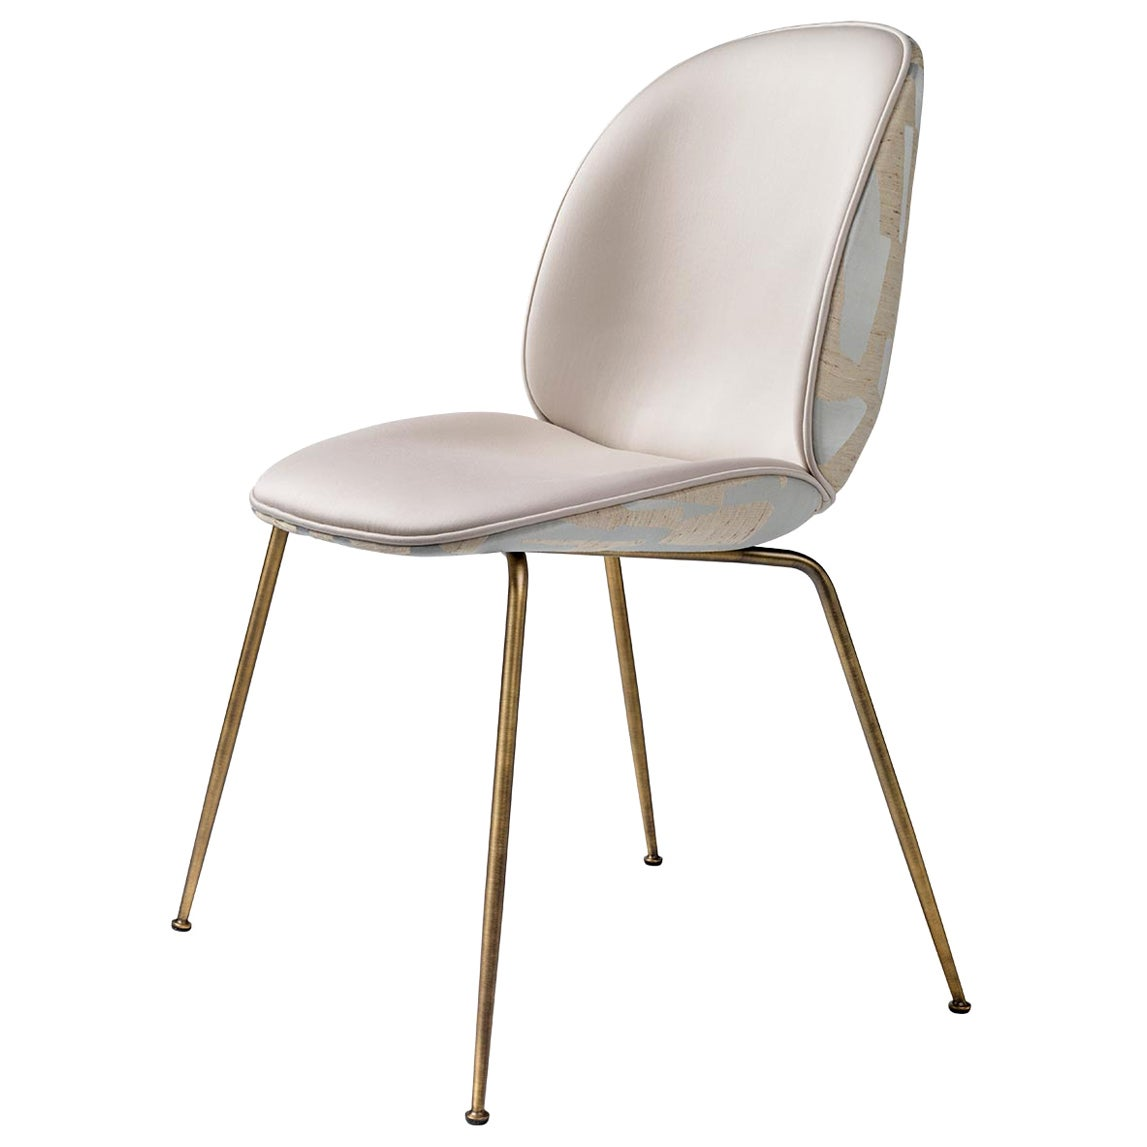 Beetle Dining Chair, Fully Upholstered, Conic Base, Antique Brass